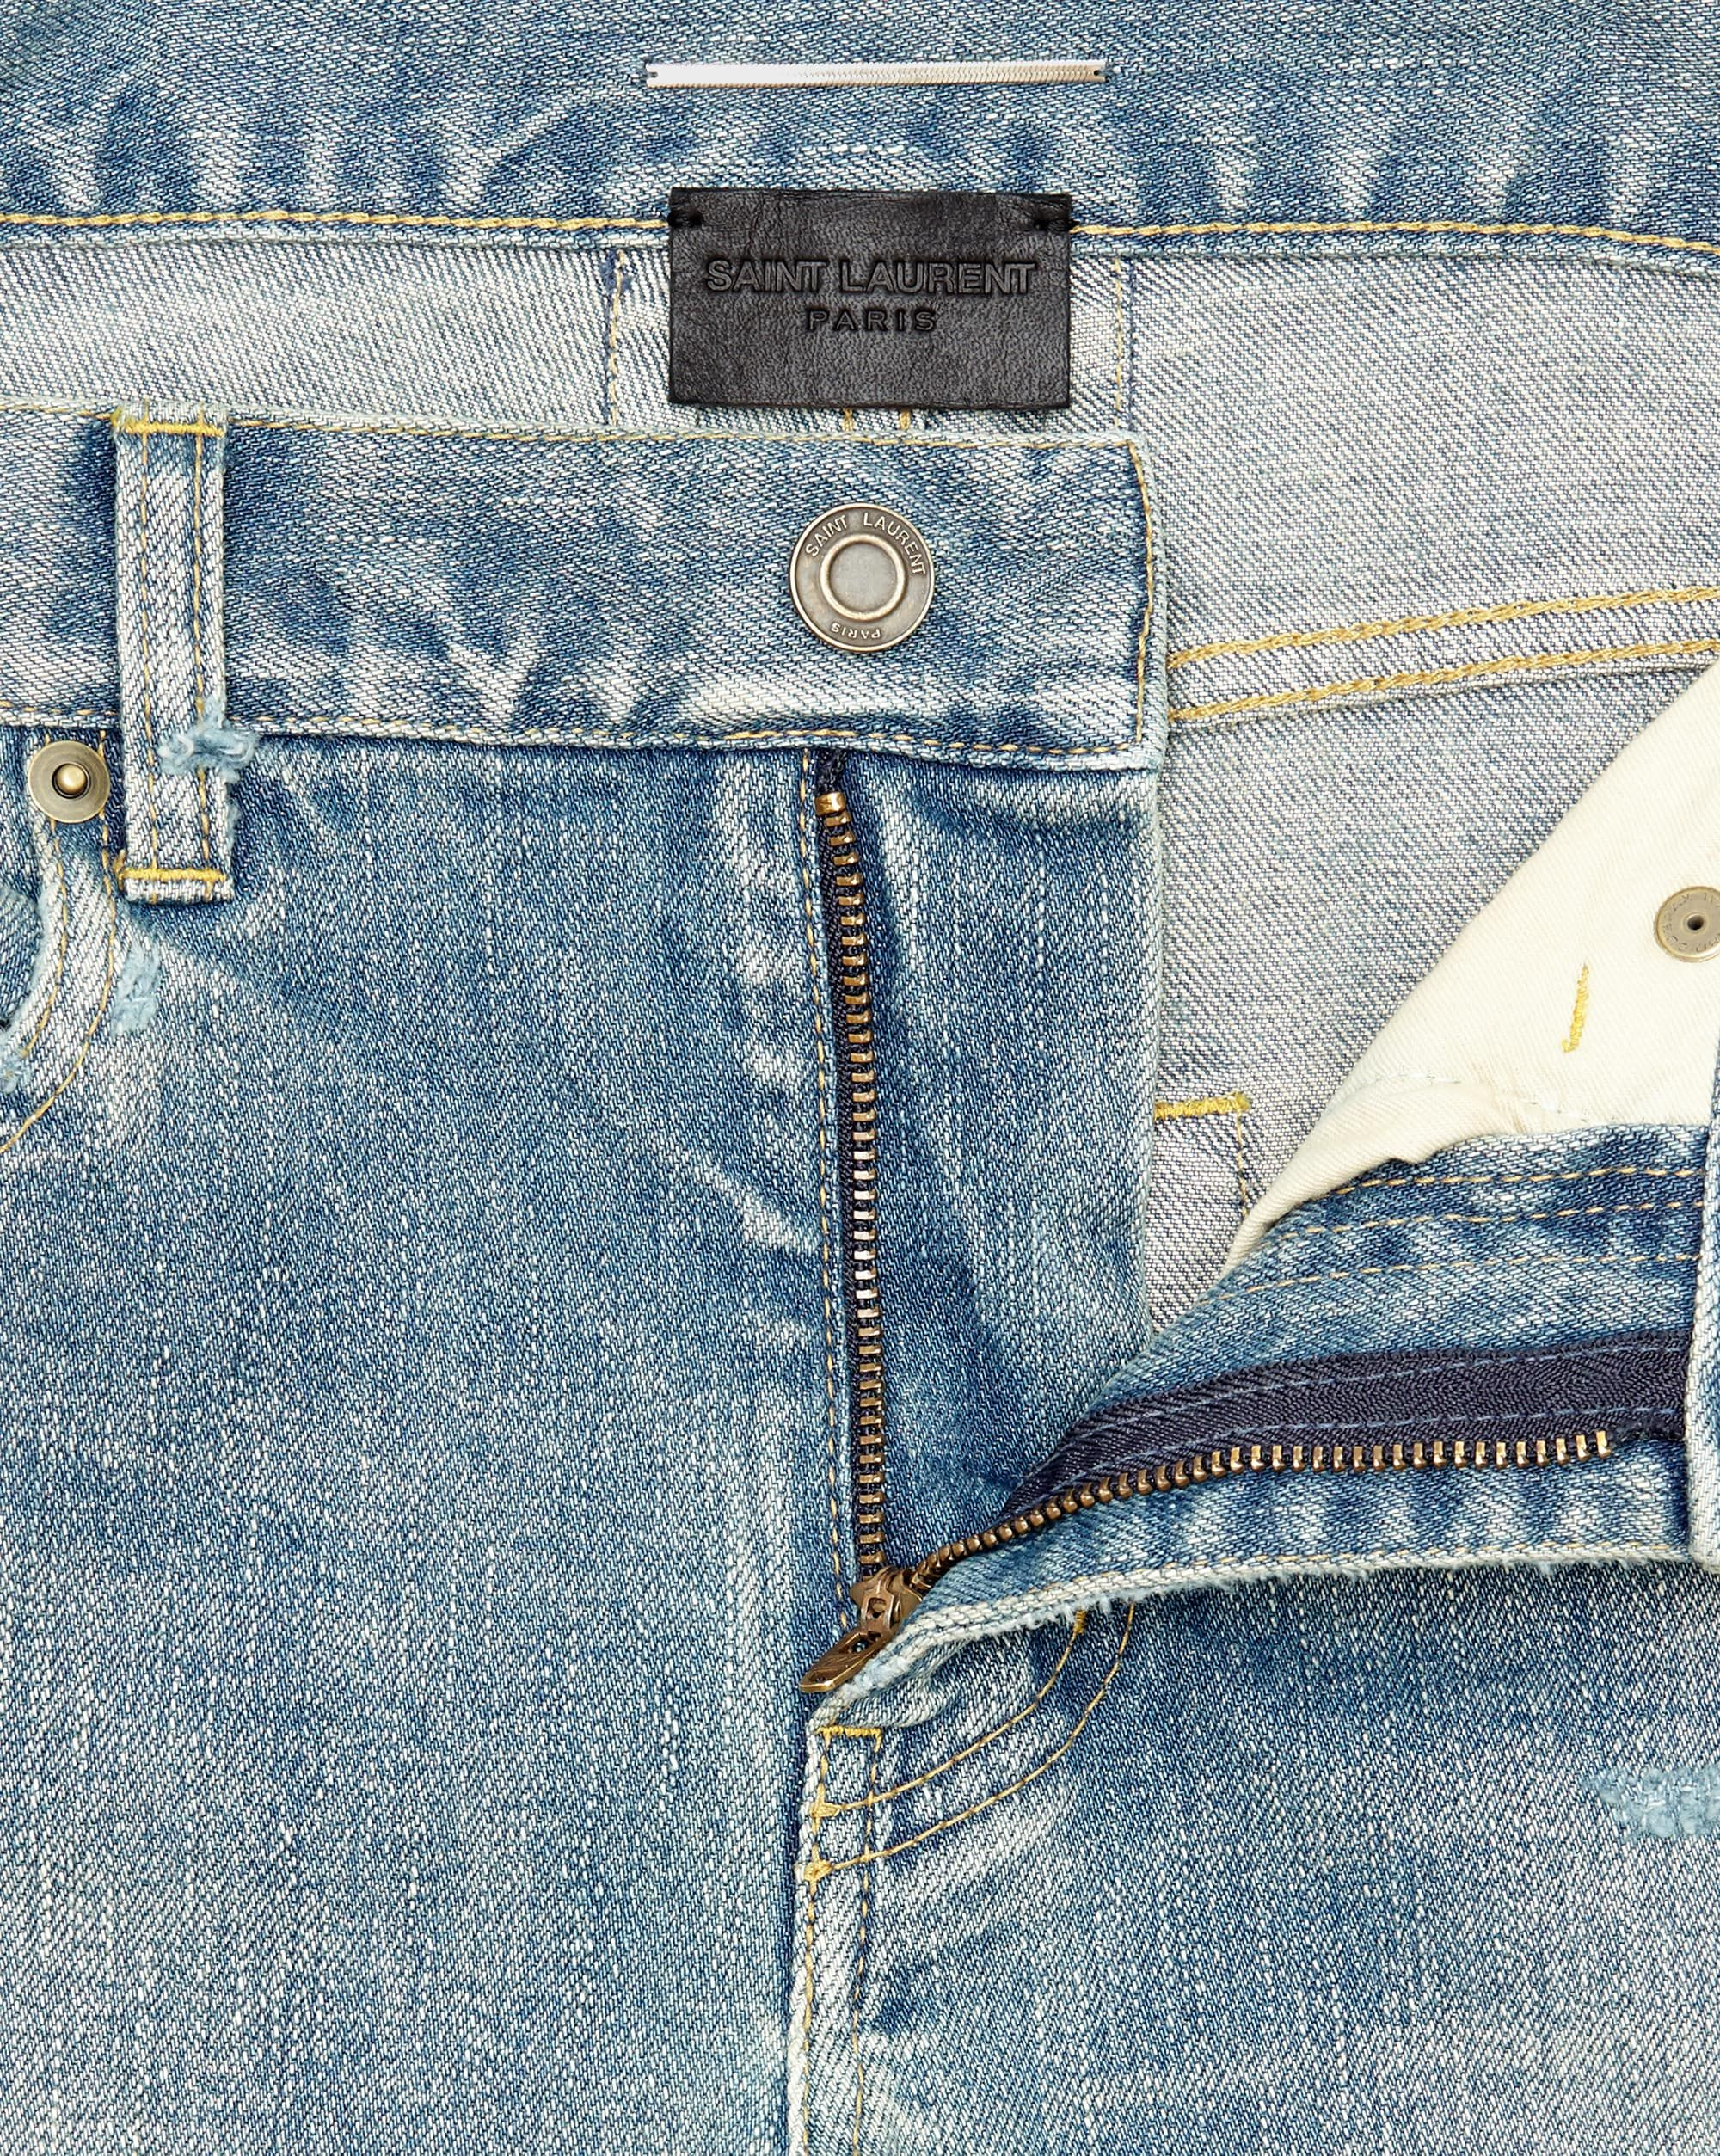 fded9956fb Saint Laurent ORIGINAL Low WAISTED Destroyed SKINNY JEAN IN Dirty ...